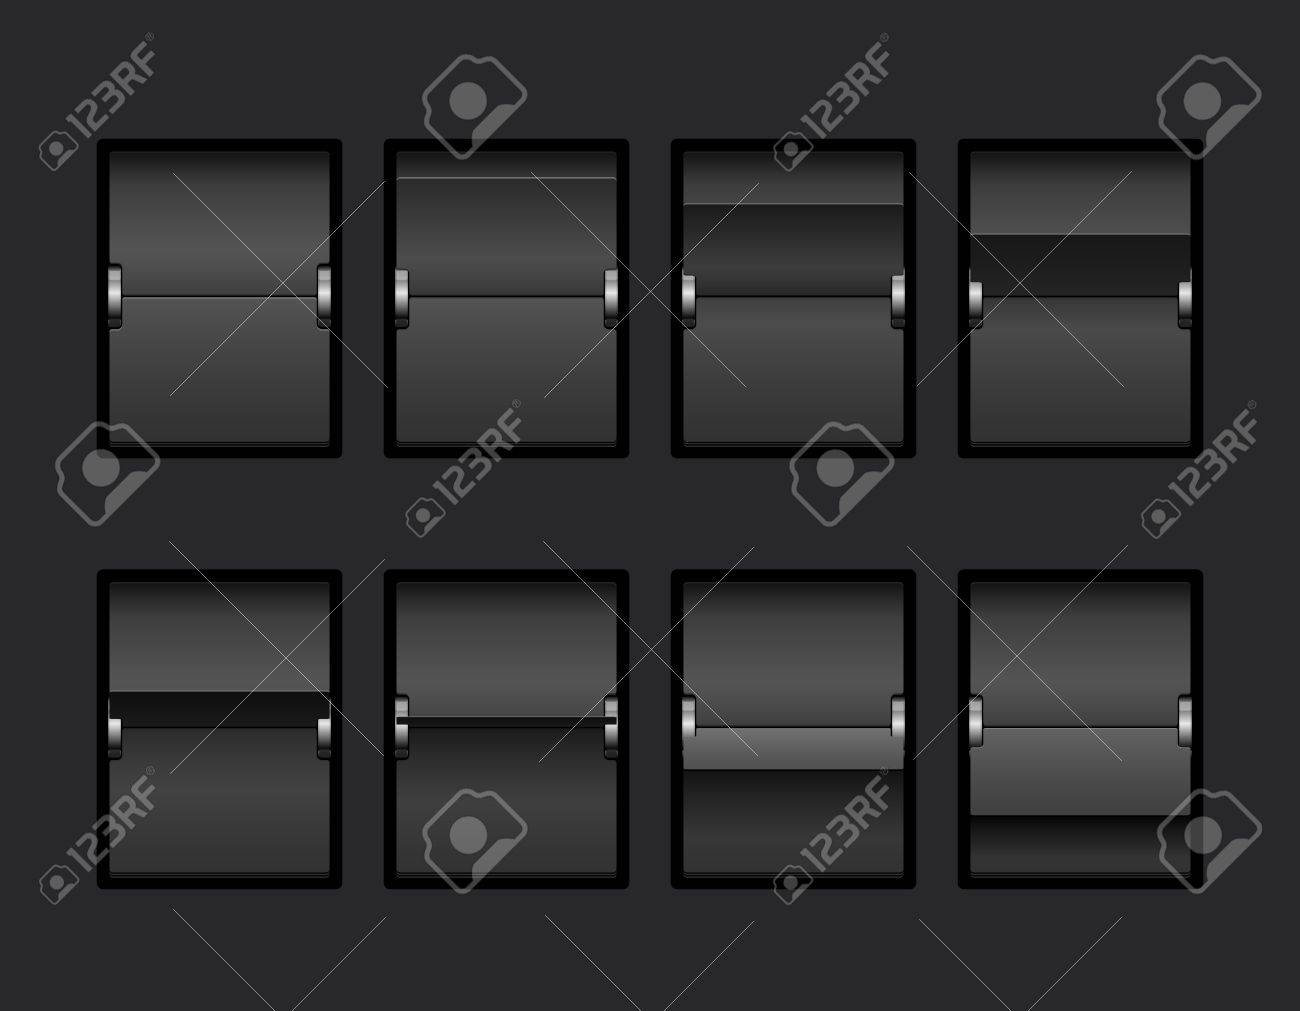 Mechanical Panel Change Process Stages Vector Illustration - 18543547